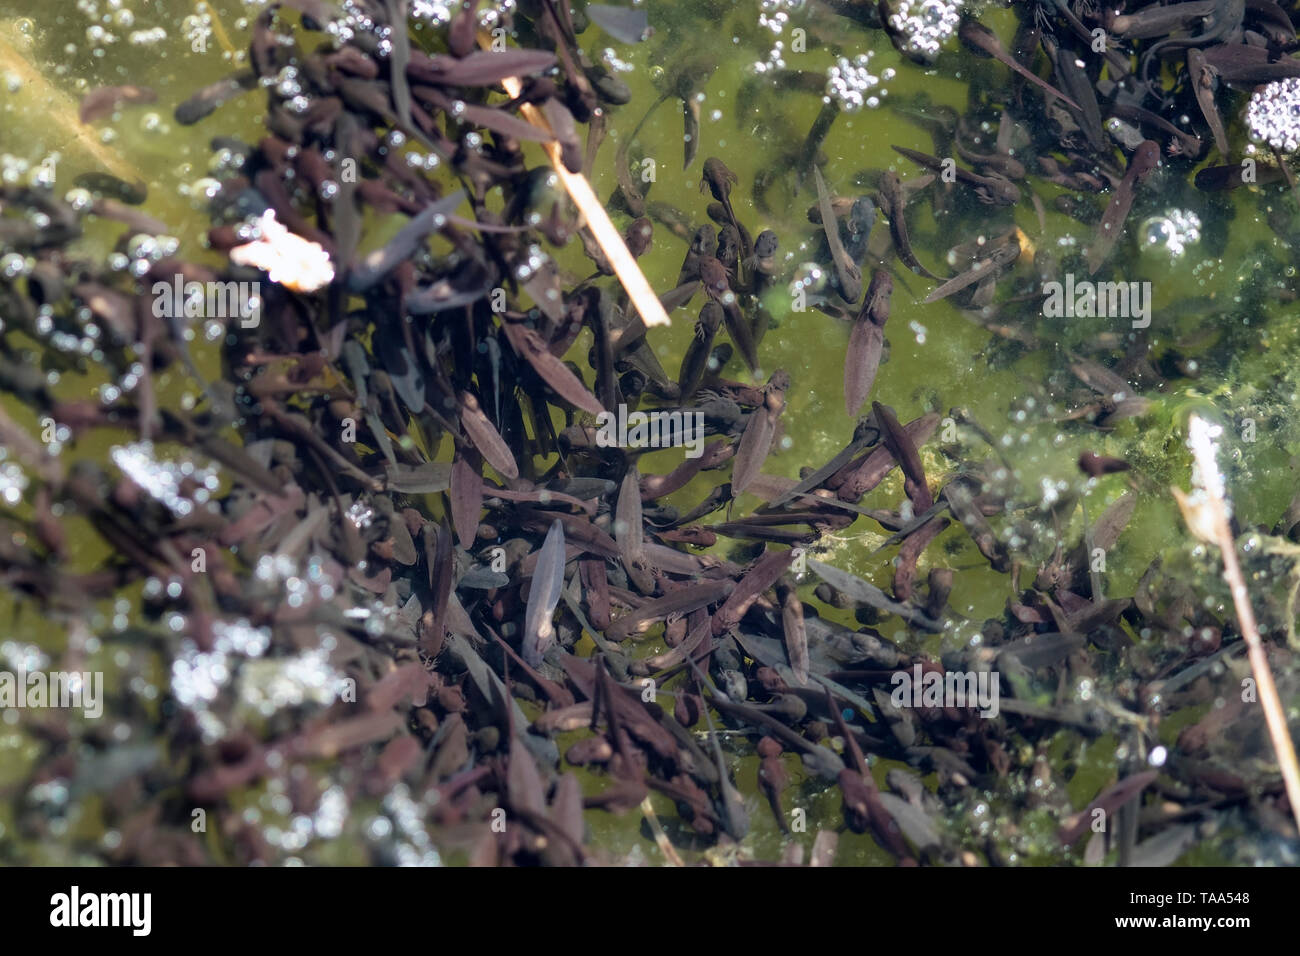 Common frog tadpoles in water, Finland - Stock Image